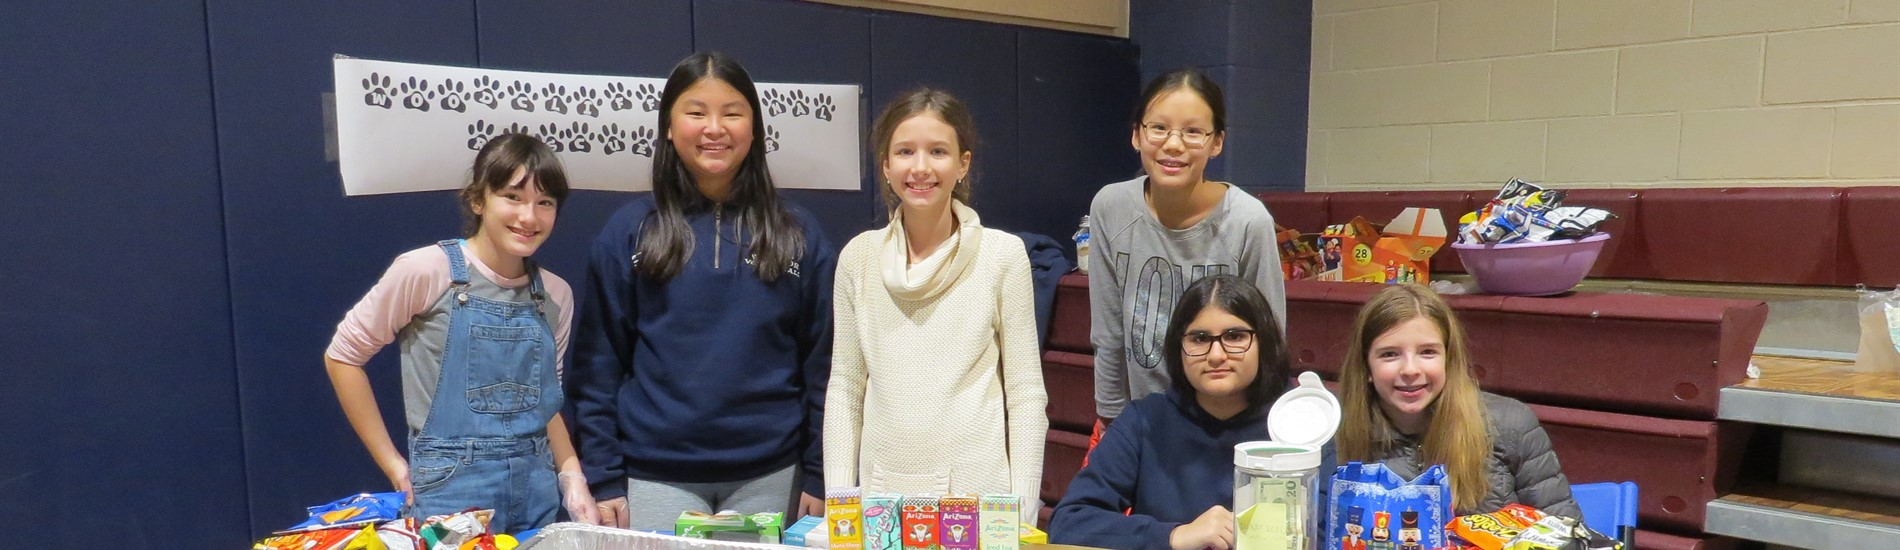 WCMS students fund raising table to help pet rescue